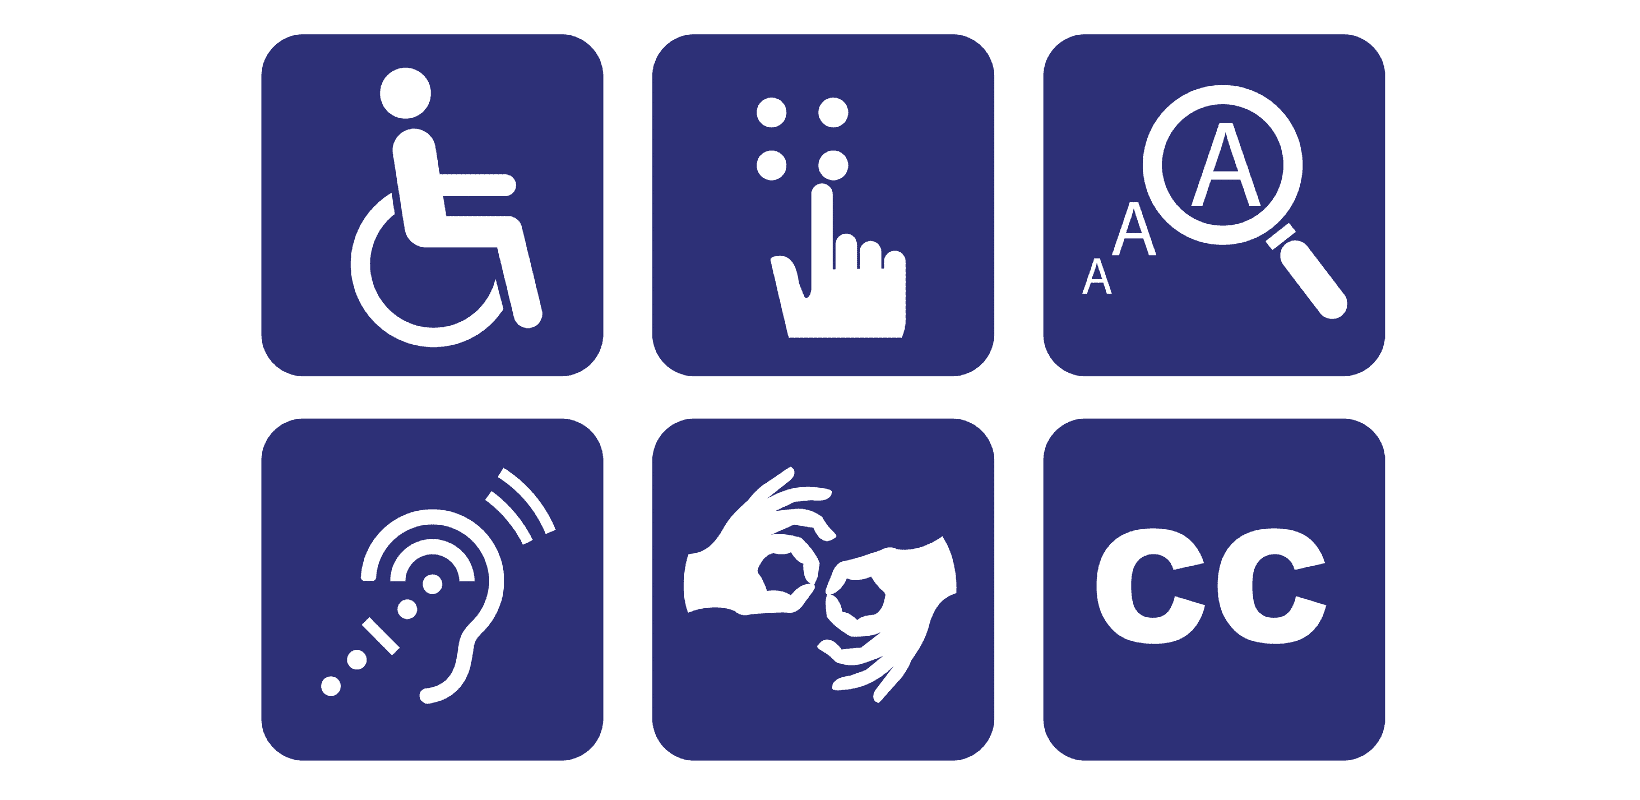 accessibility icons including a person in a wheelchair, a hand touching Braille, magnified type, hearing aid, sign language, and